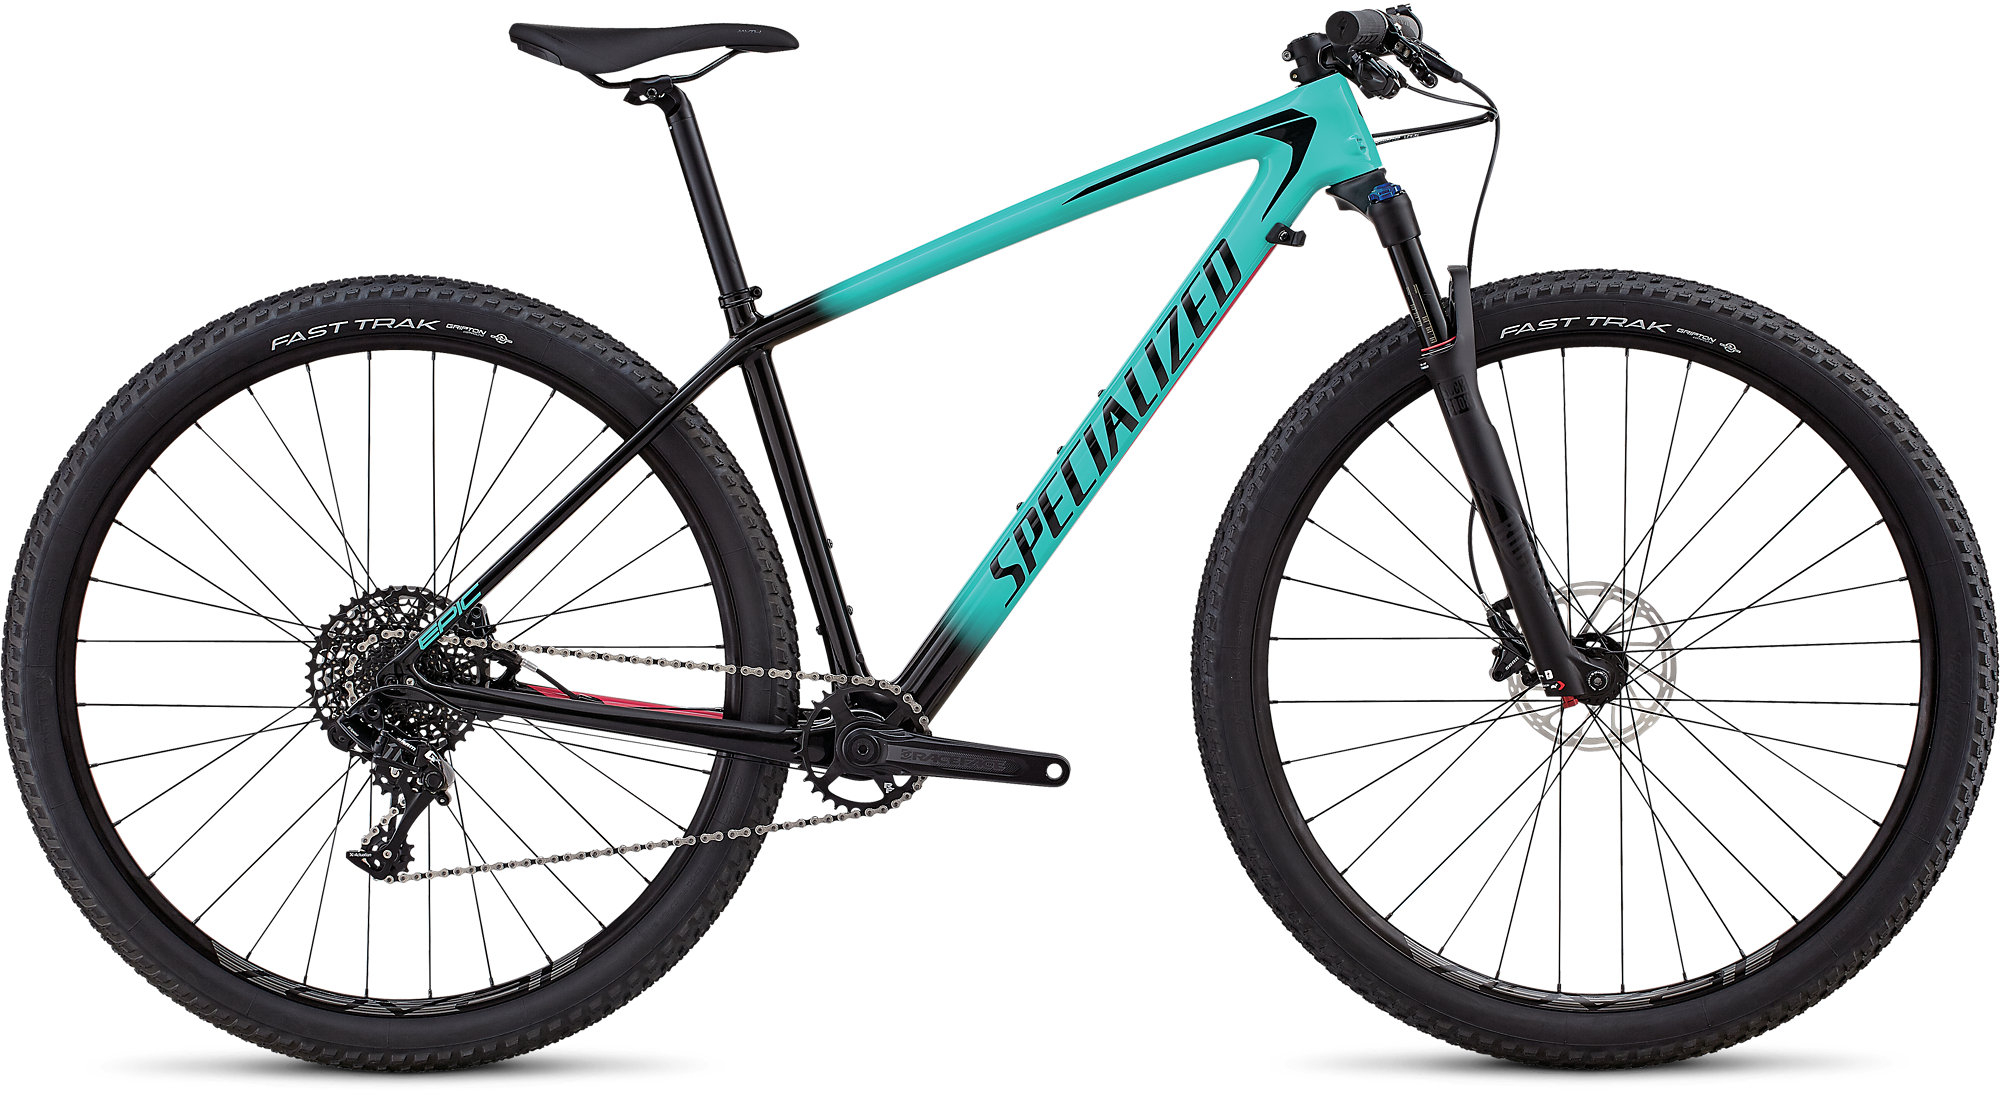 Specialized Women hardtail mountain bike